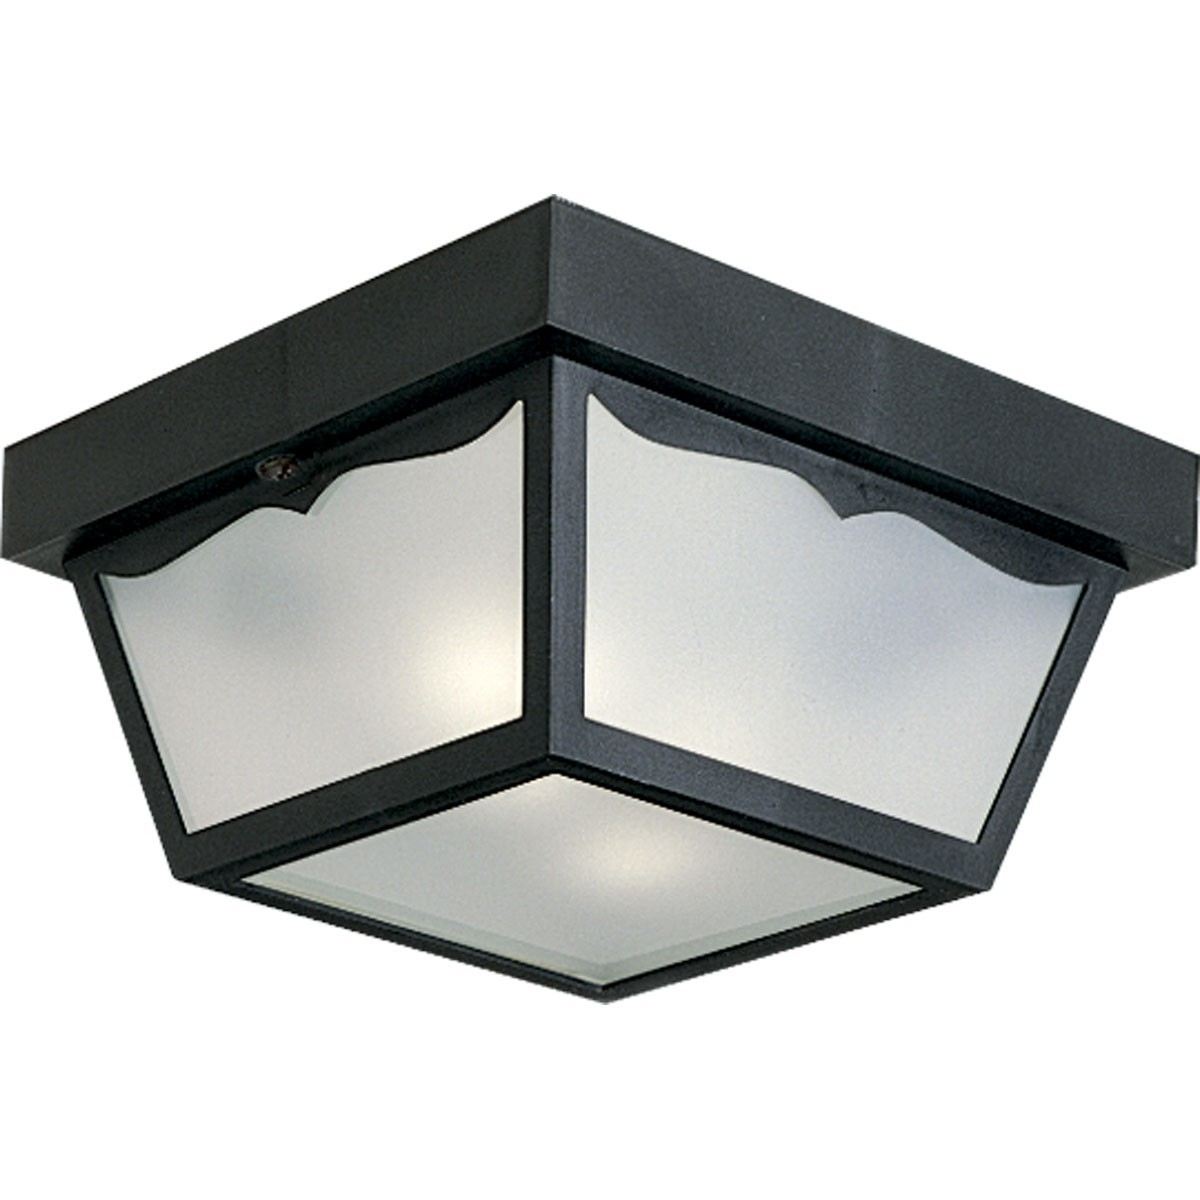 Famous Outdoor Lighting: Astonishing Dusk To Dawn Outdoor Ceiling Light Led With Regard To Dusk To Dawn Outdoor Ceiling Lights (View 6 of 20)